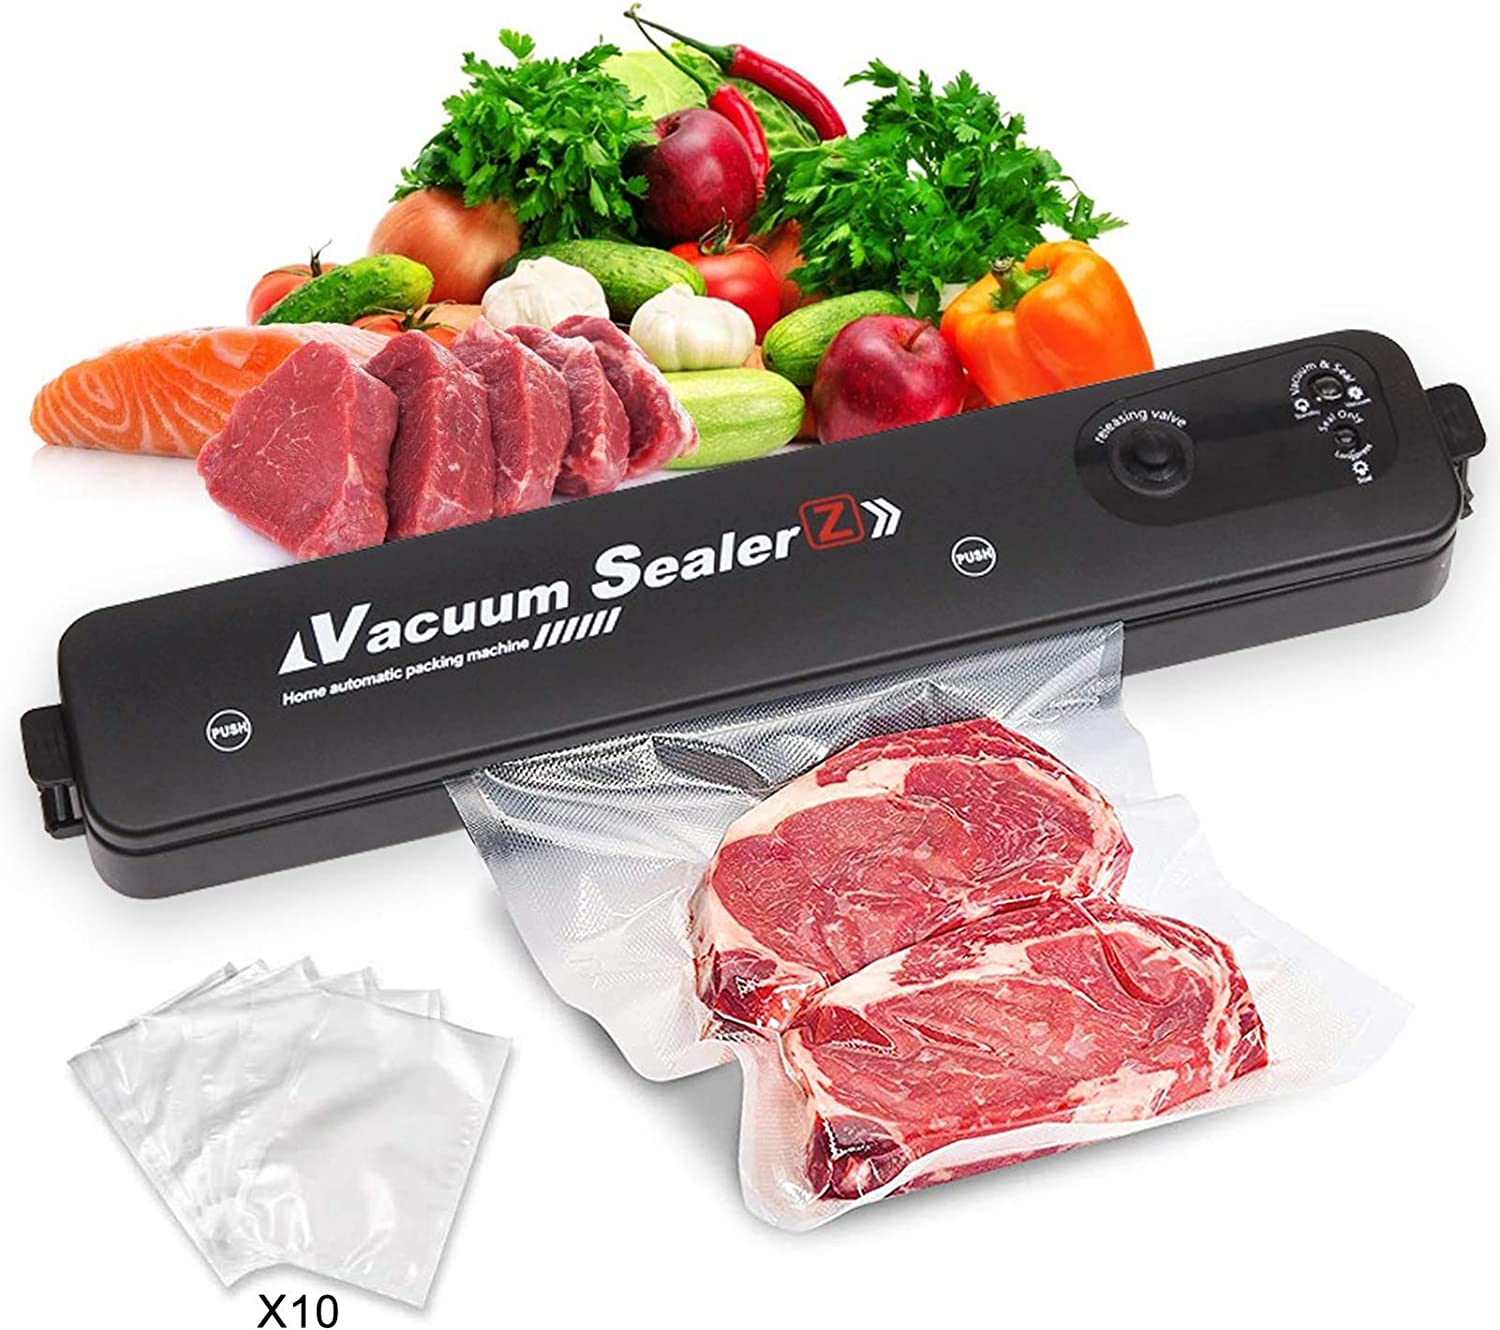 Vacuum Sealer 60kqa Food Savers Machine Automatic Packing for Food Preservation with 10 Bags Portable Mychonly